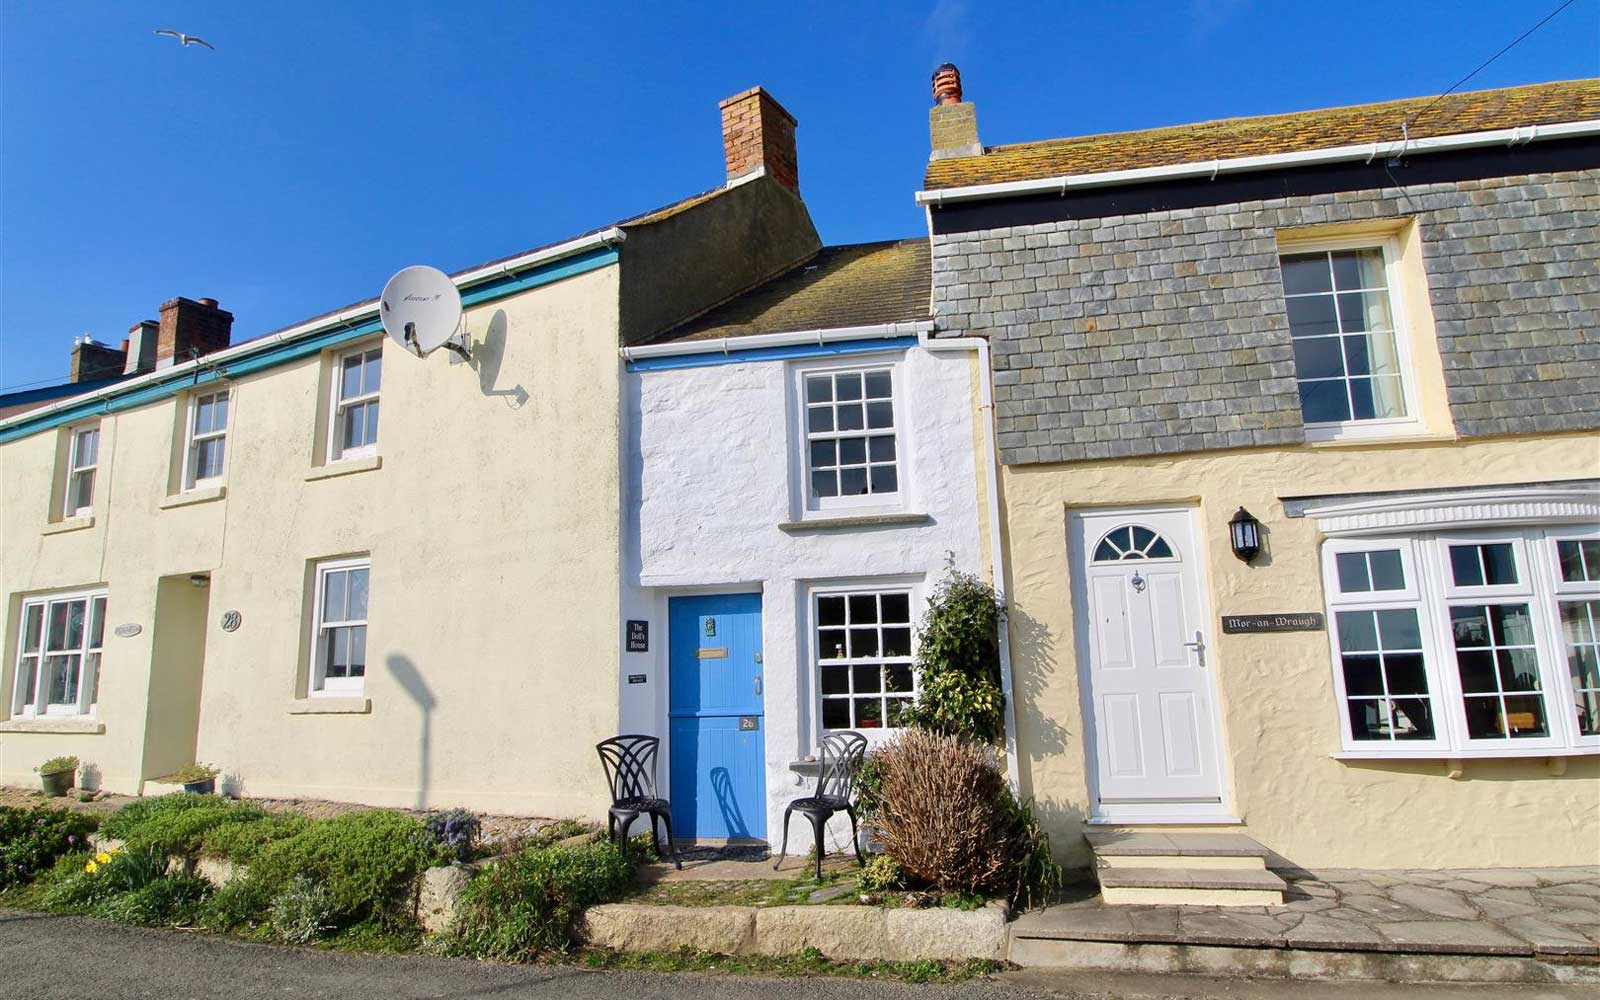 Narrow Cottage in village of Porthleven, Cornwall.